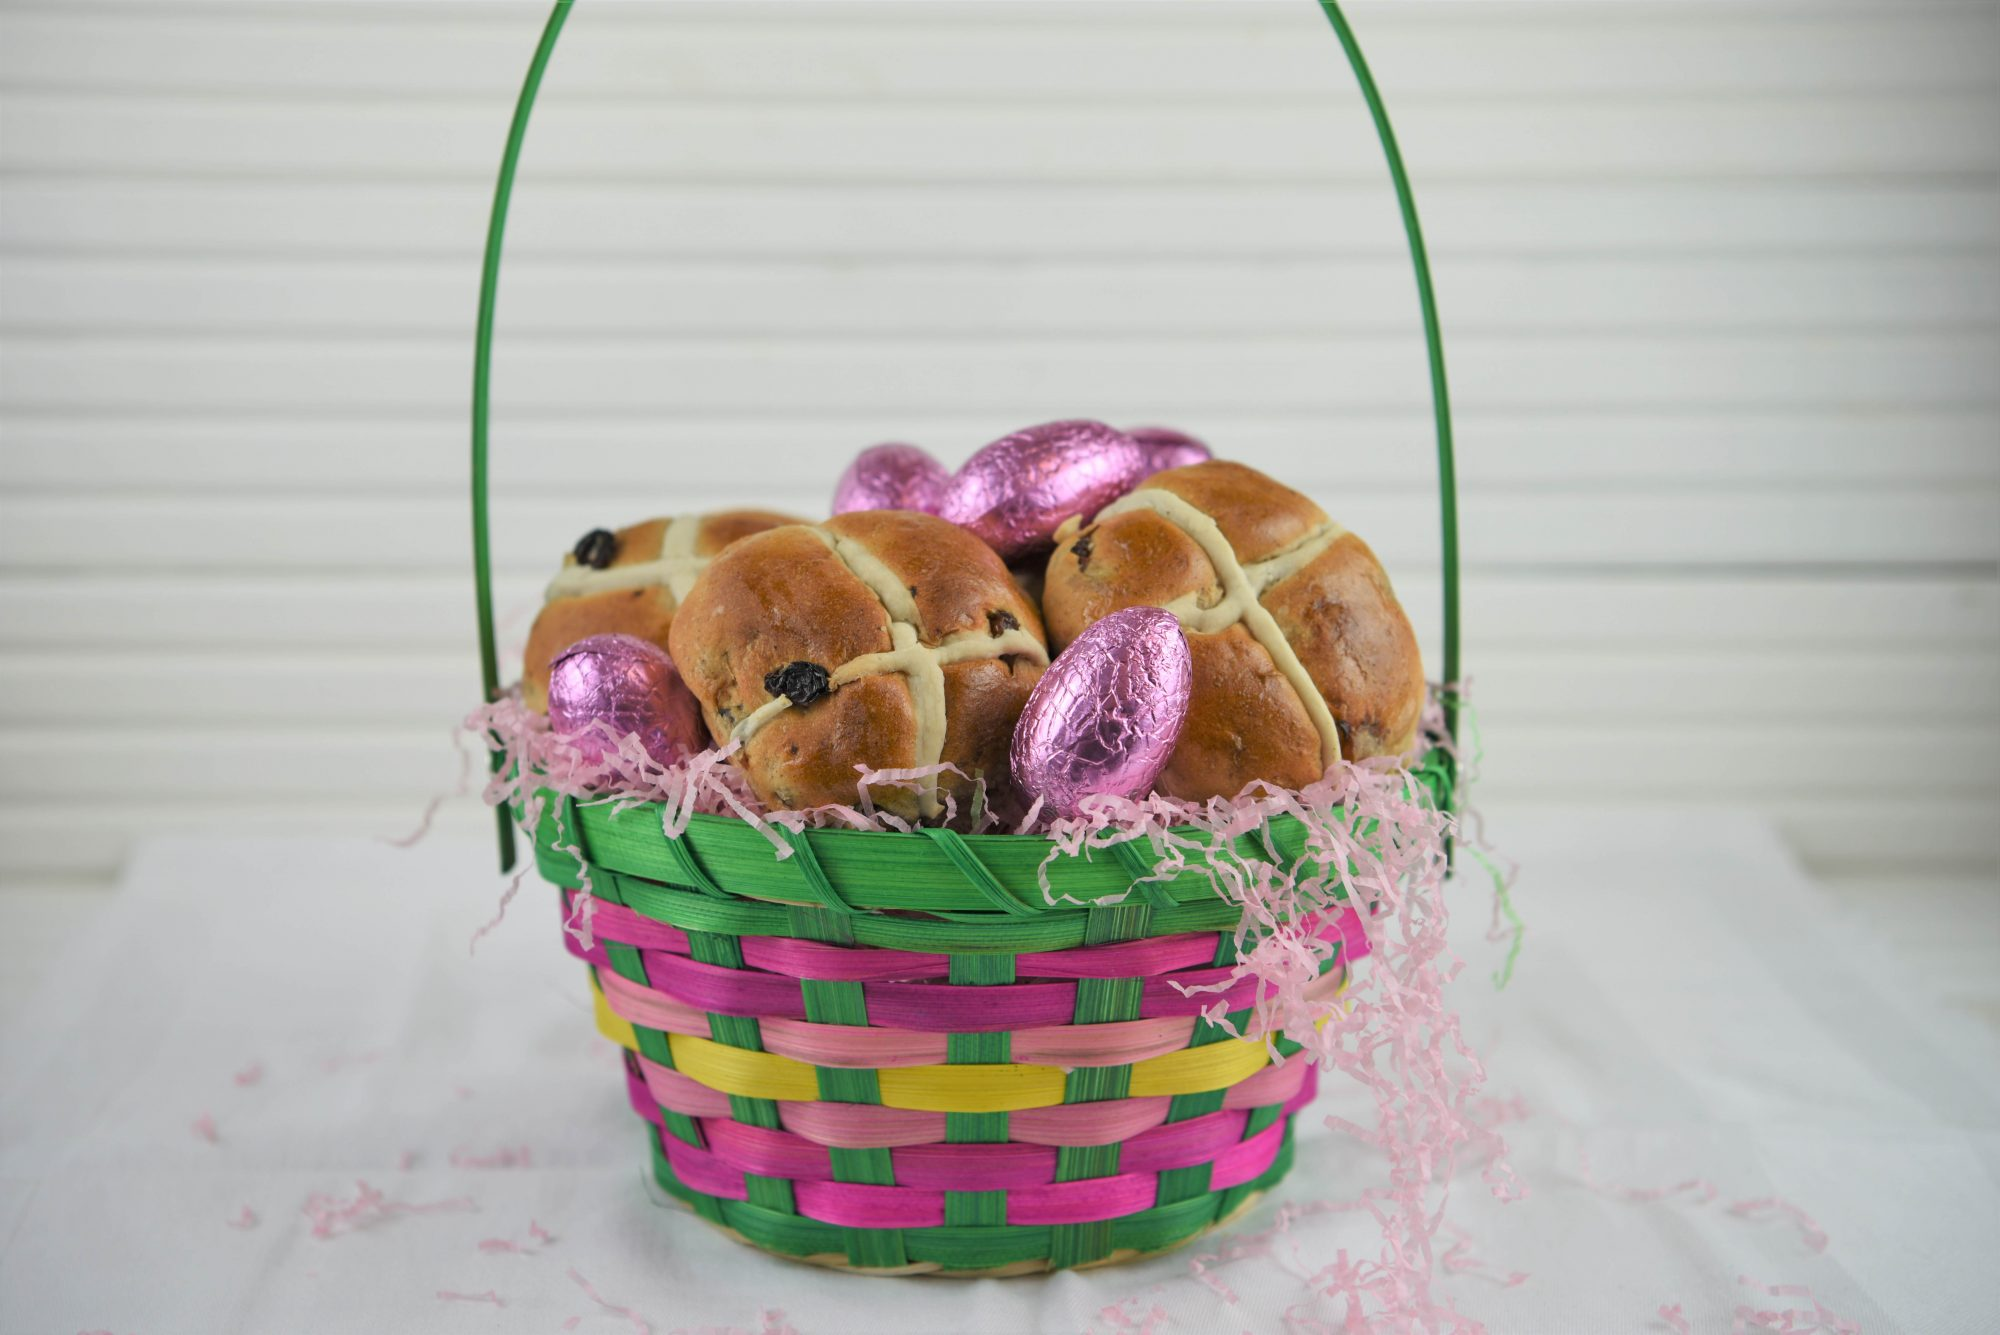 Hot Cross Buns Easter Basket Getty 12/18/19